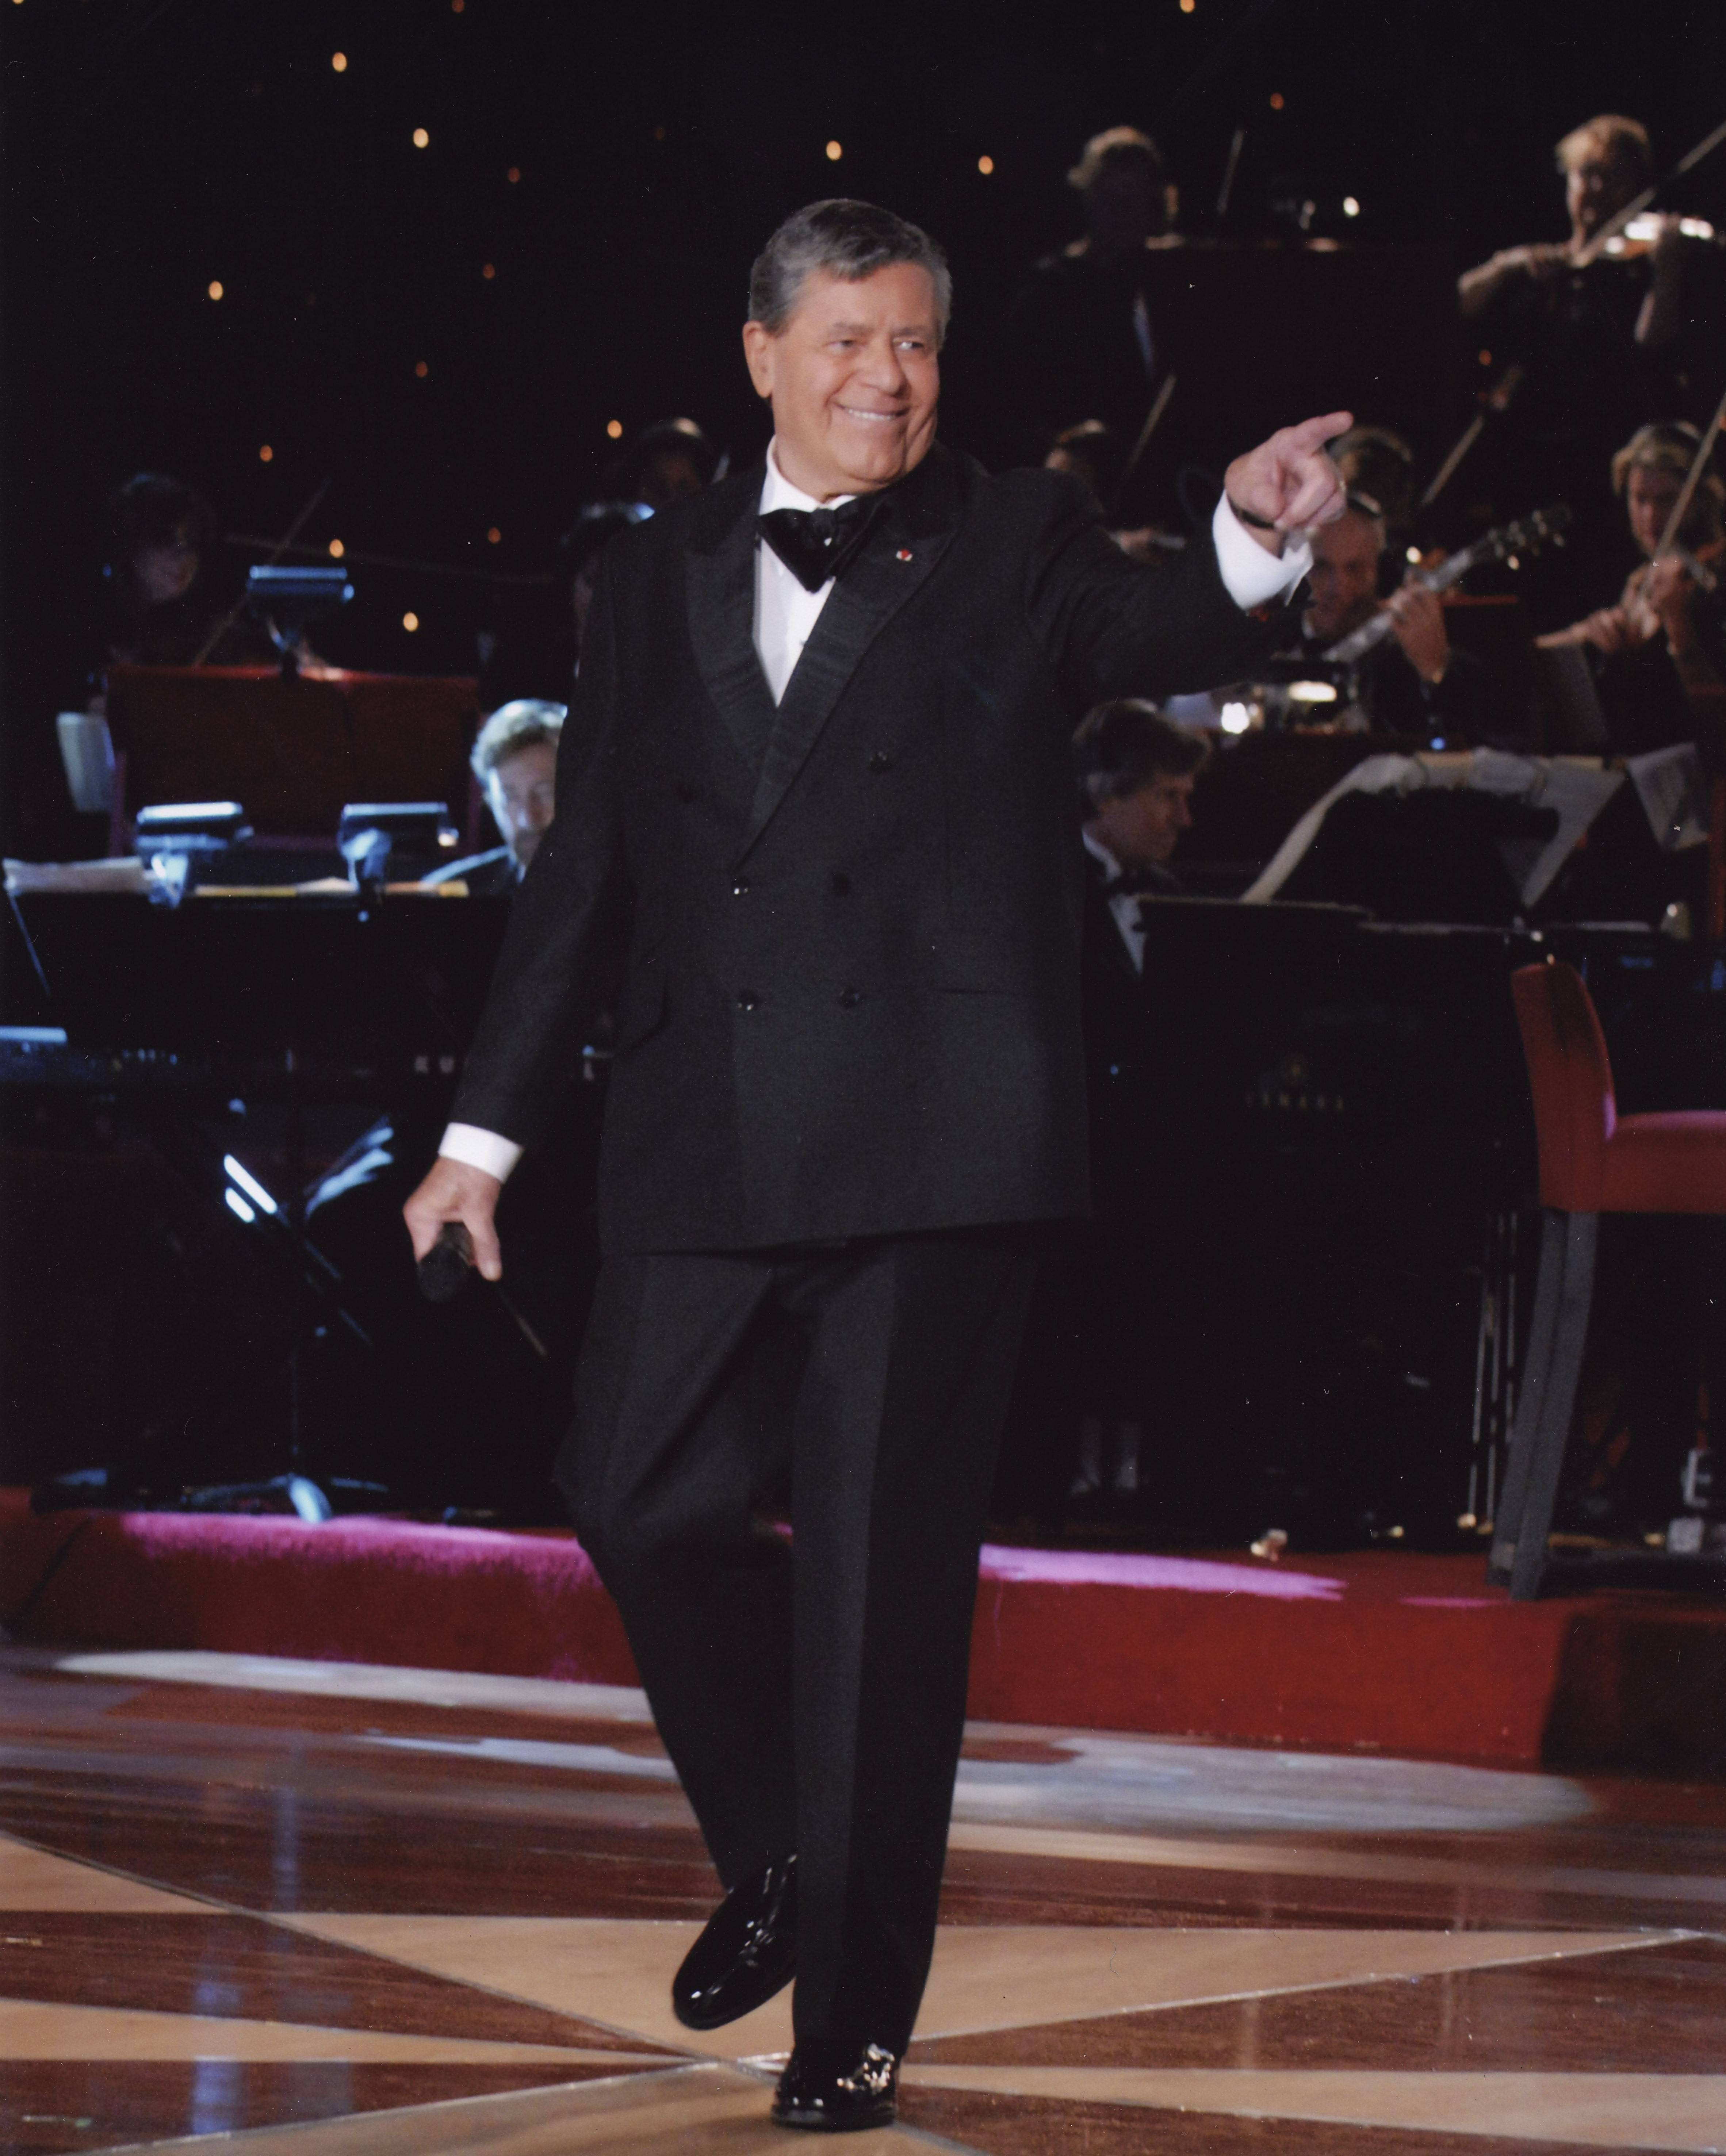 Jerry Lewis performs at Aurora's Paramount Theatre for a single show Sunday, Oct. 26.